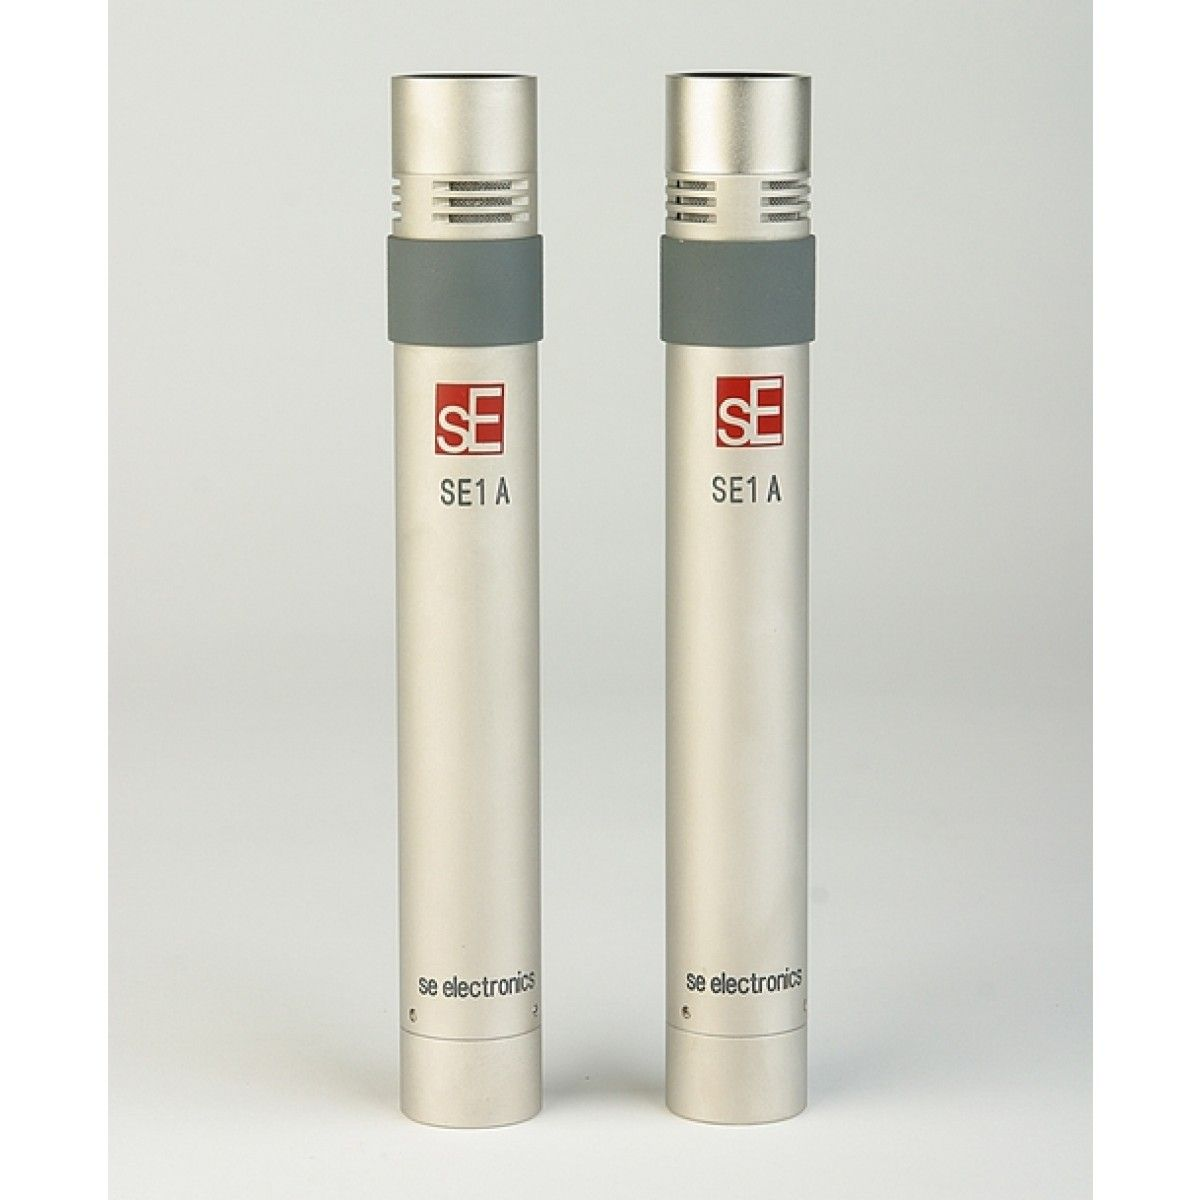 se1a stereo pair matched condenser microphones